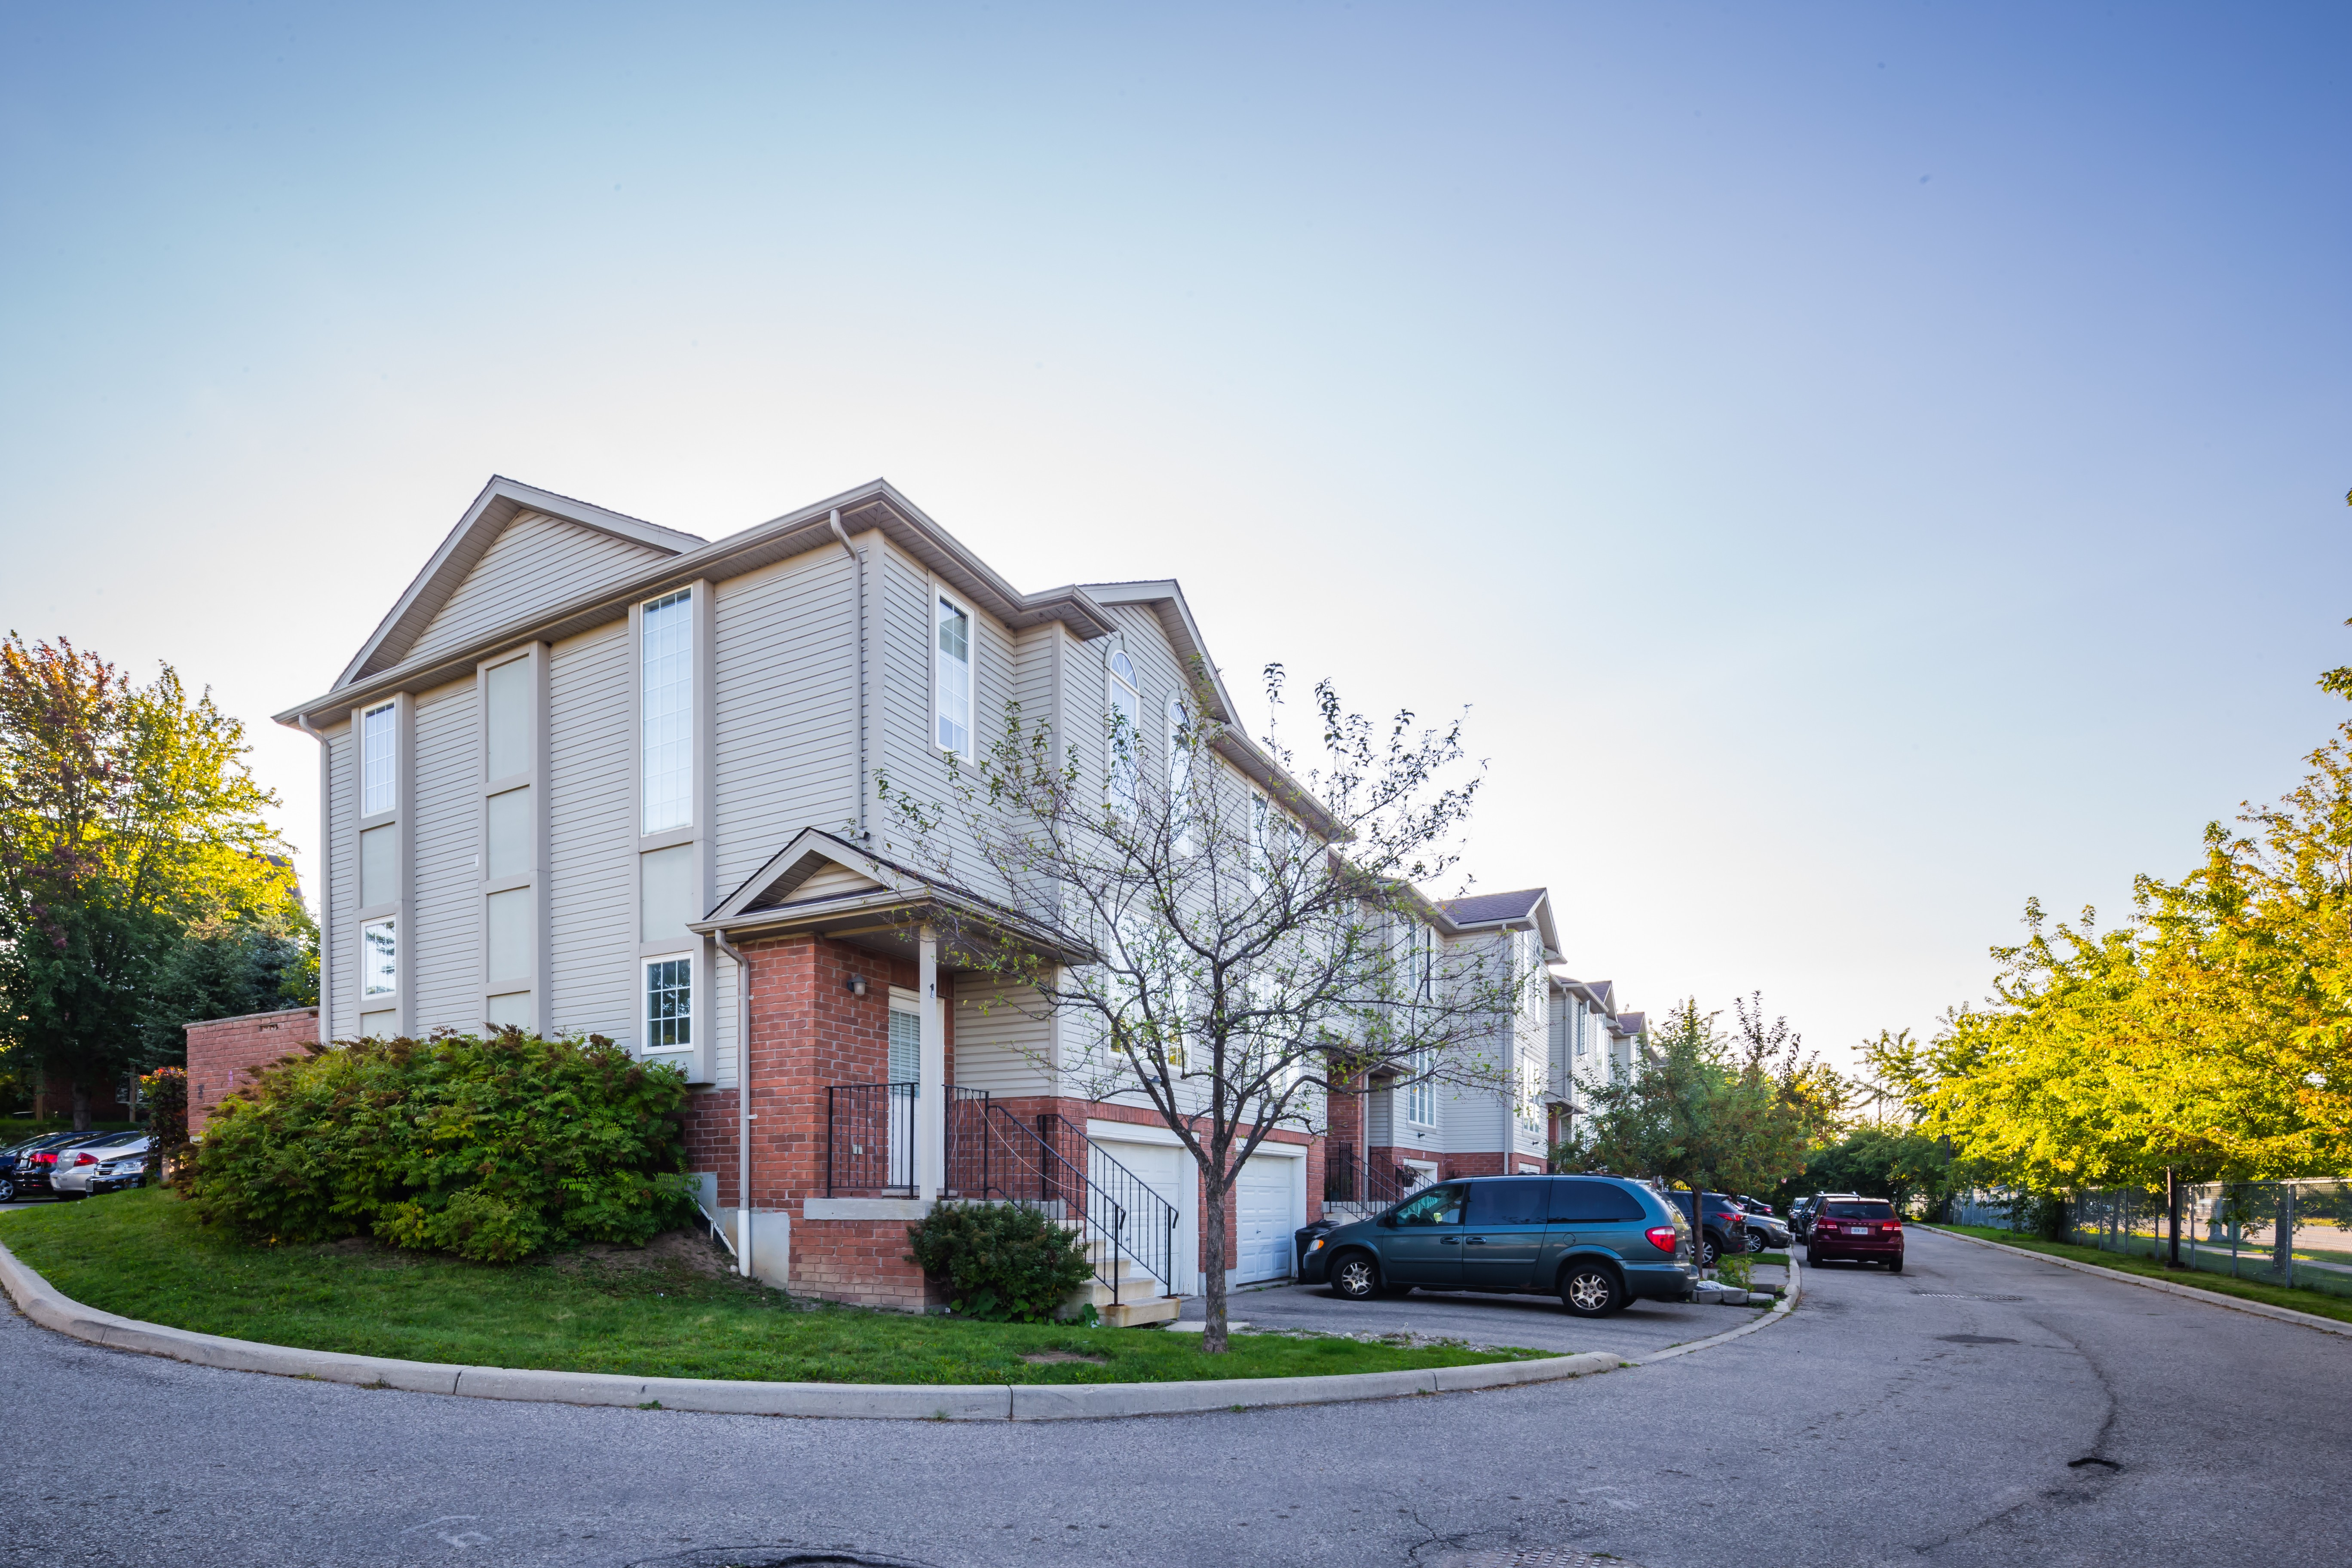 600 White Elm Townhomes at 600 White Elm Blvd, Waterloo 0